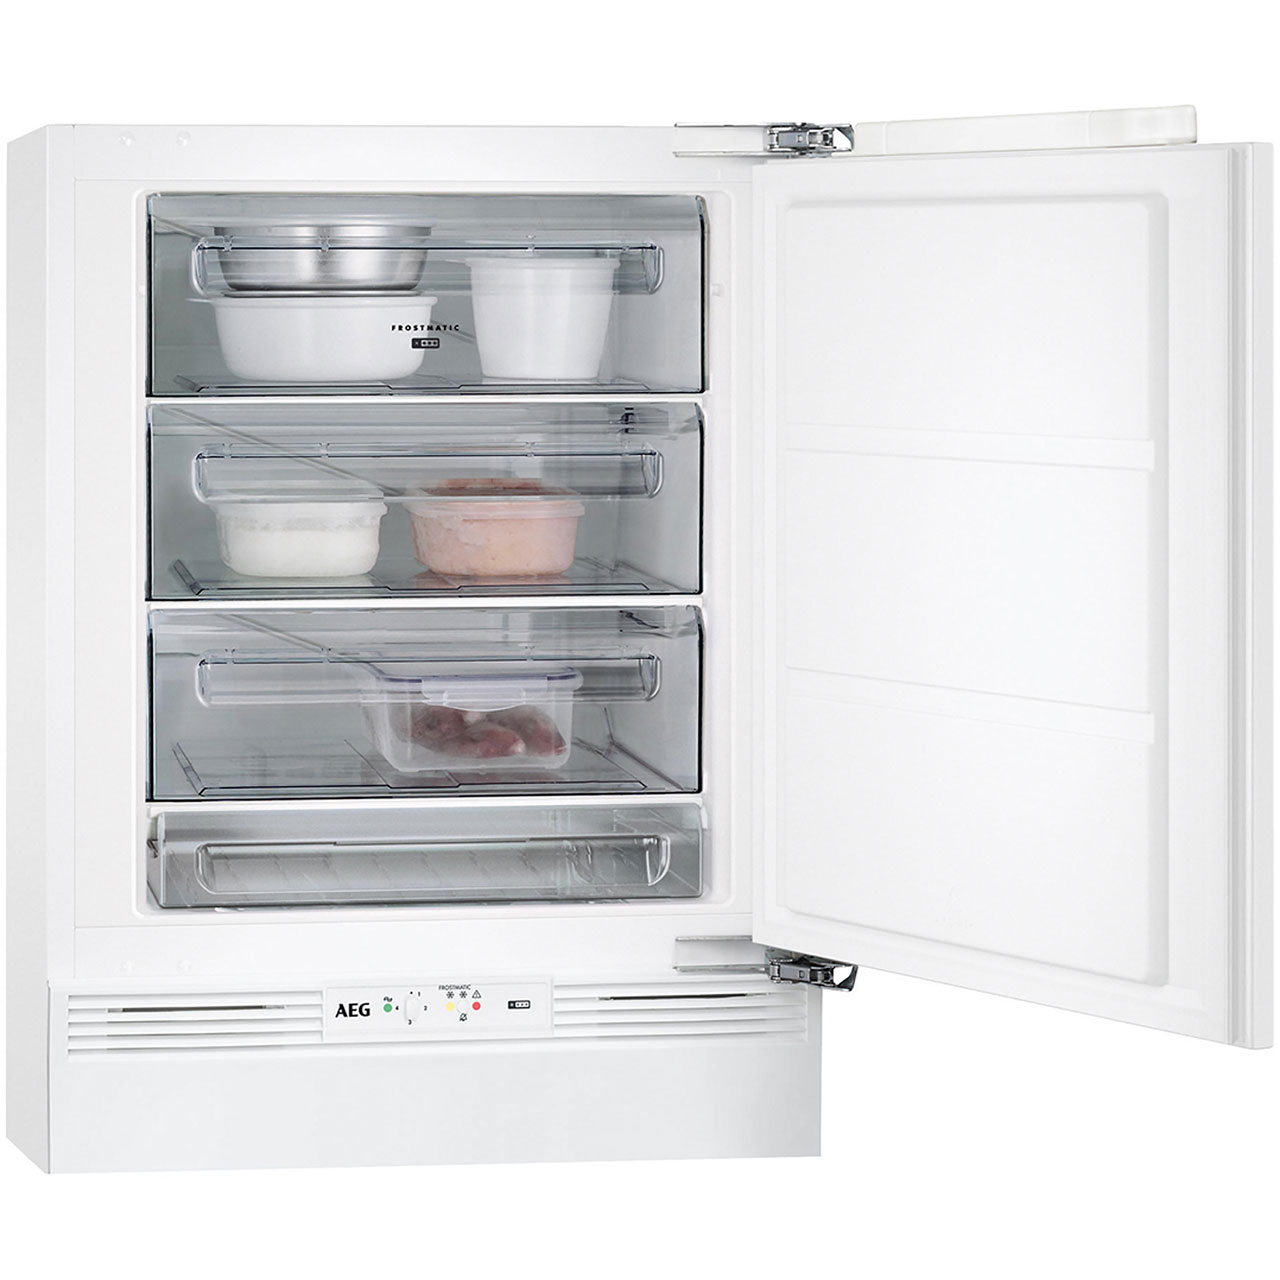 AEG ABS6821VAF Integrated Under Counter Freezer review